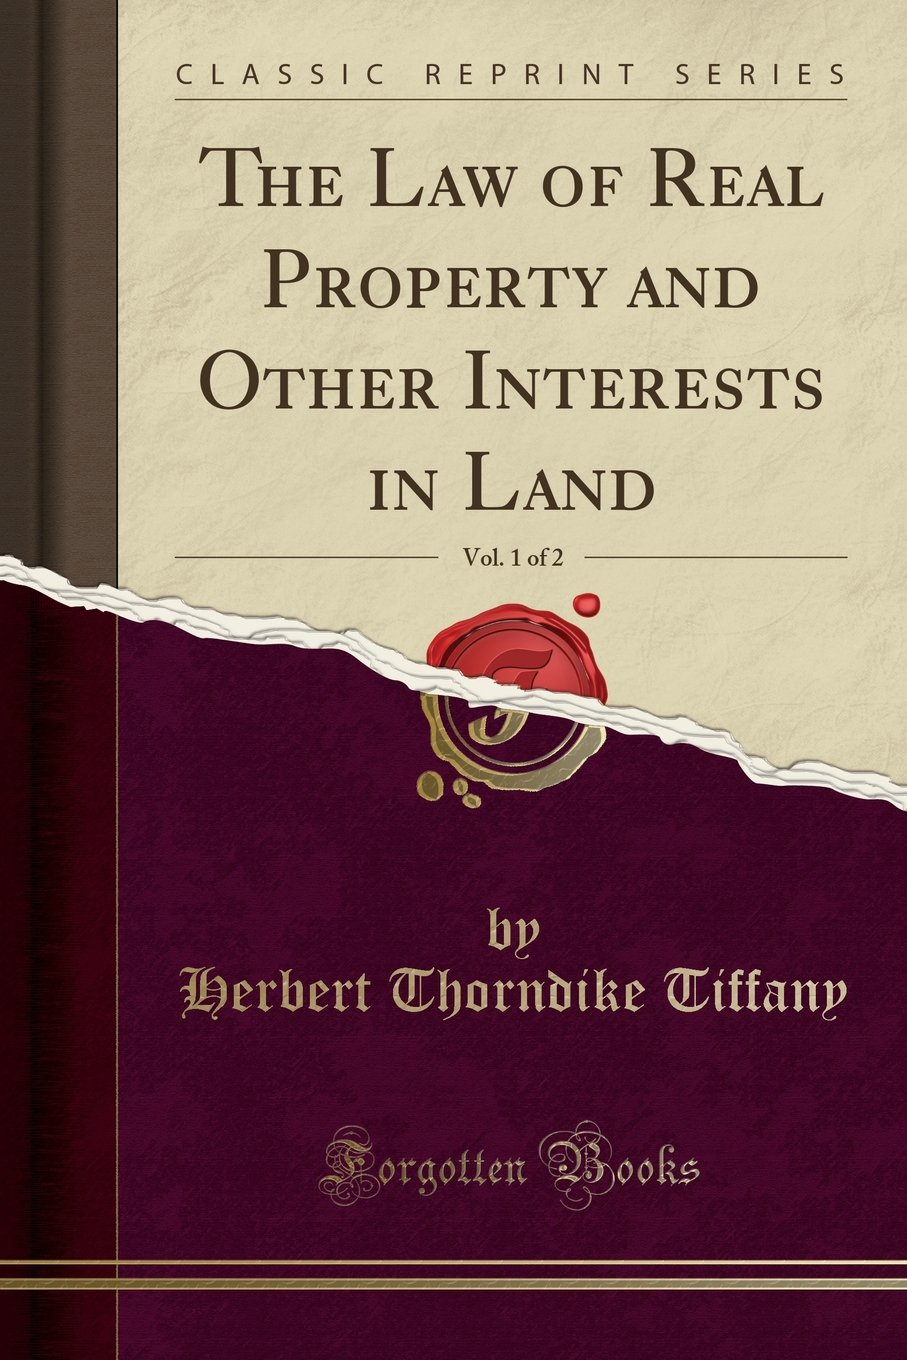 Download The Law of Real Property and Other Interests in Land, Vol. 1 of 2 (Classic Reprint) PDF